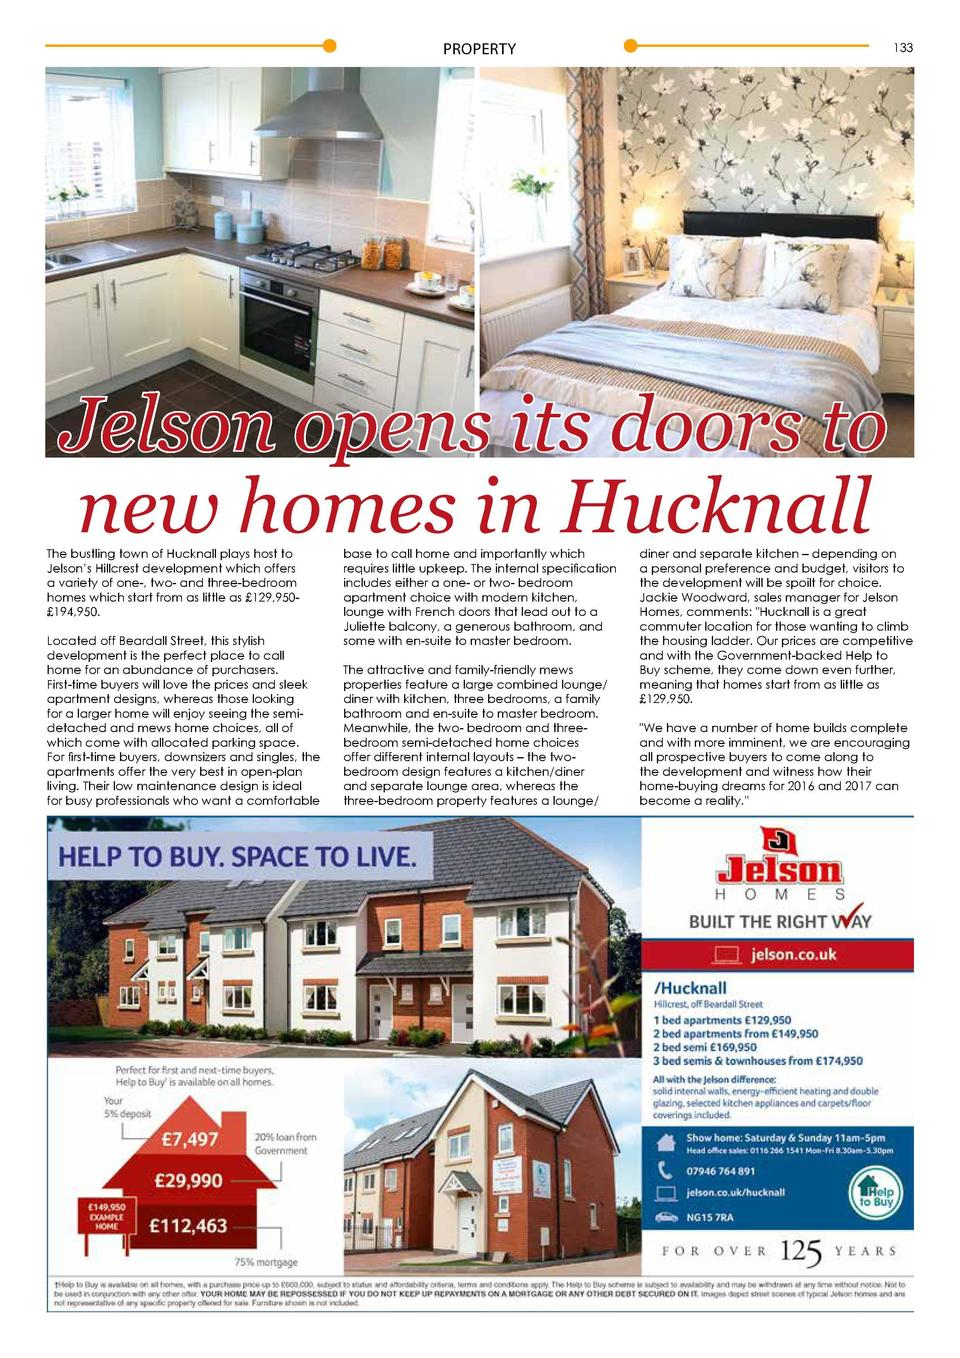 PROPERTY  132  133  Jelson opens its doors to new homes in Hucknall  The bustling town of Hucknall plays host to Jelson   ...